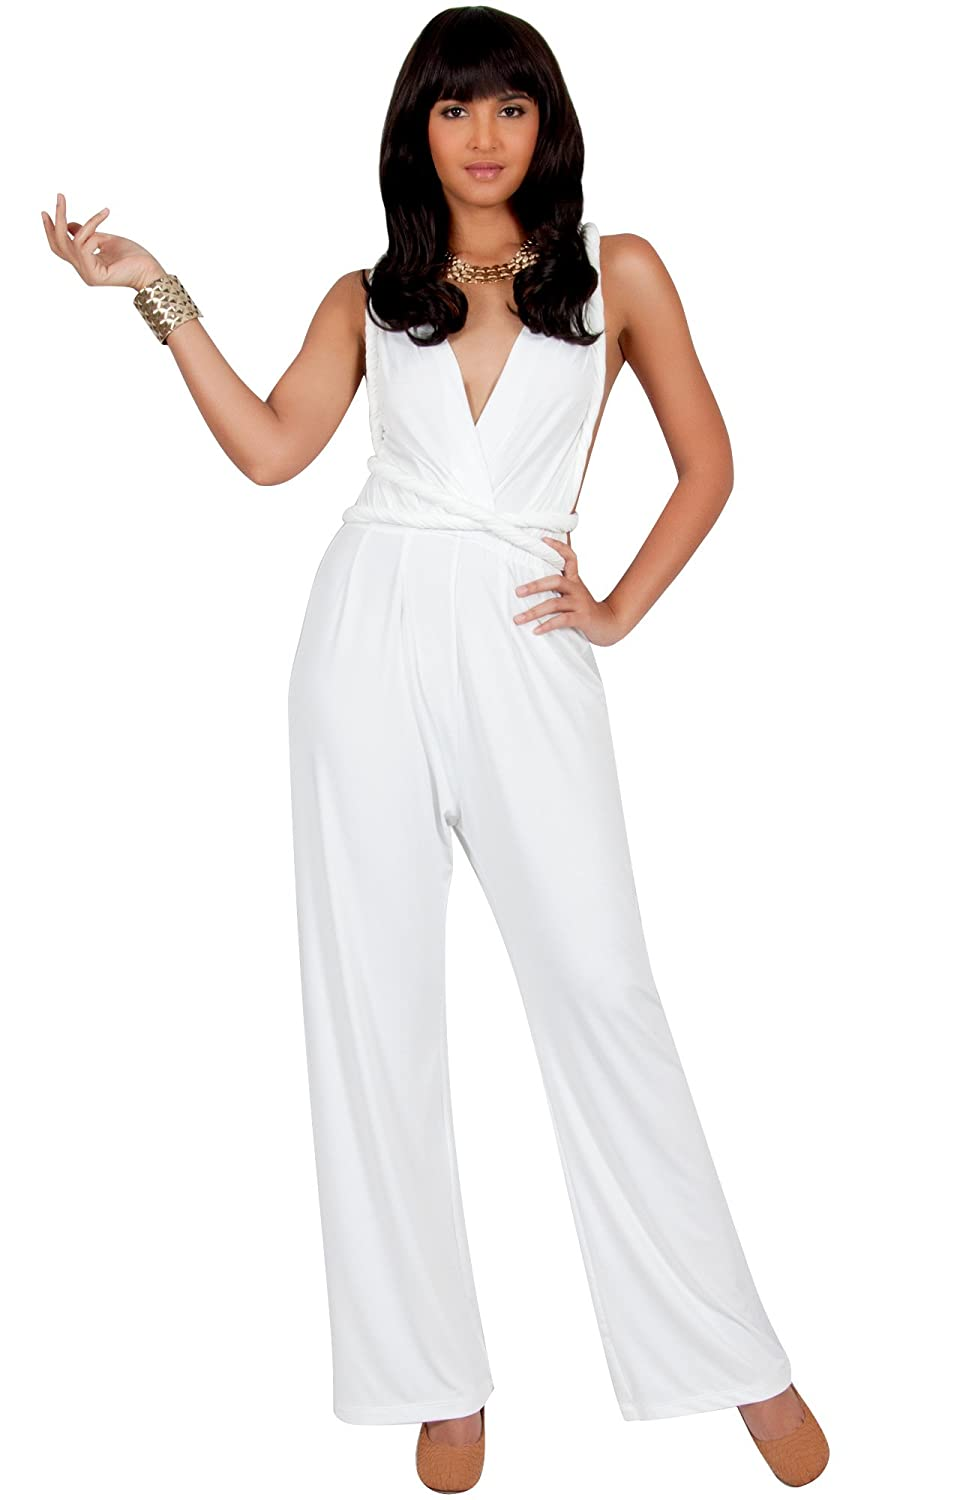 5a331cebf2d9 PLUS SIZE - This great jumpsuit design also makes a beautiful plus size  jumpsuit or plus size romper. STYLE - Comfortable and loose fitted infinity  wrap ...